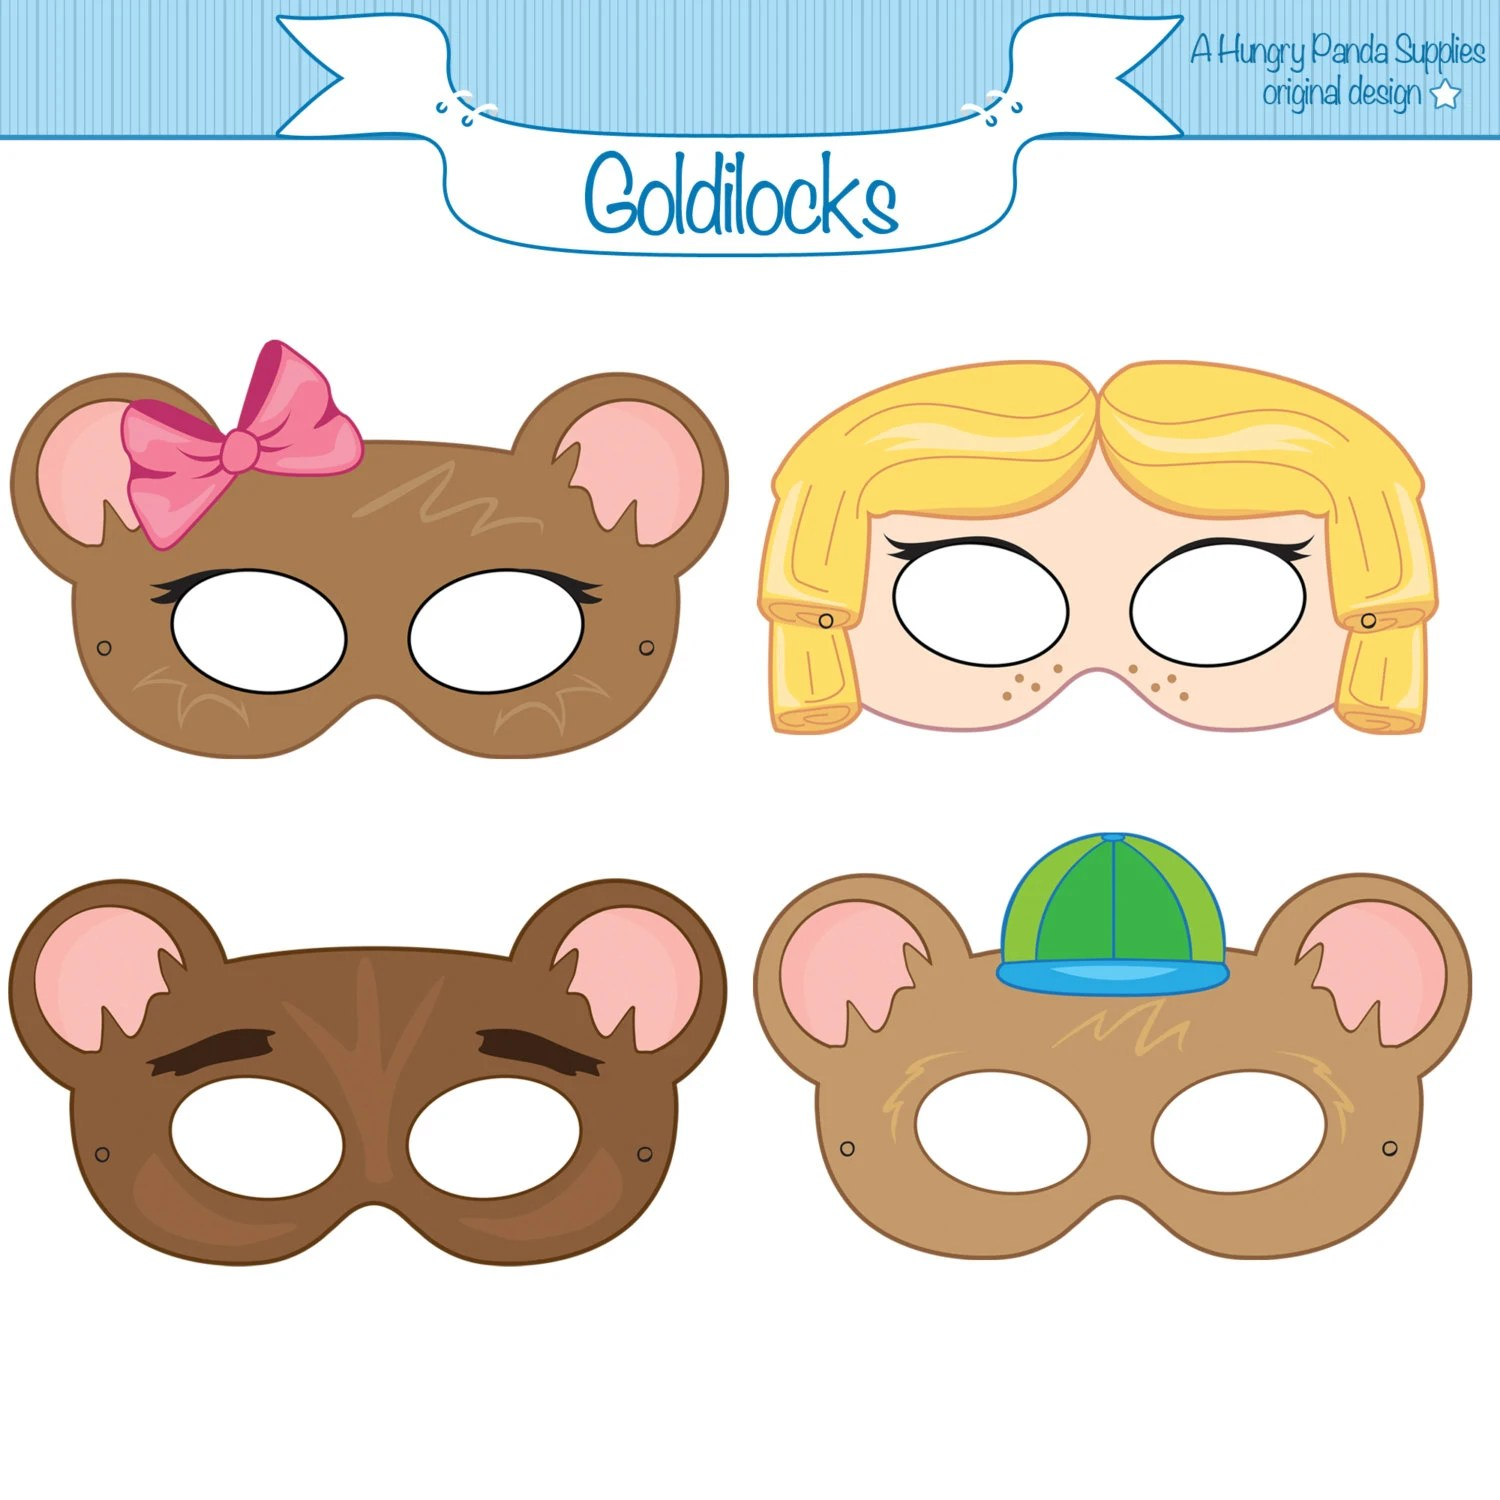 Goldilocks And The Three Bears Goldilocks Costume Gol